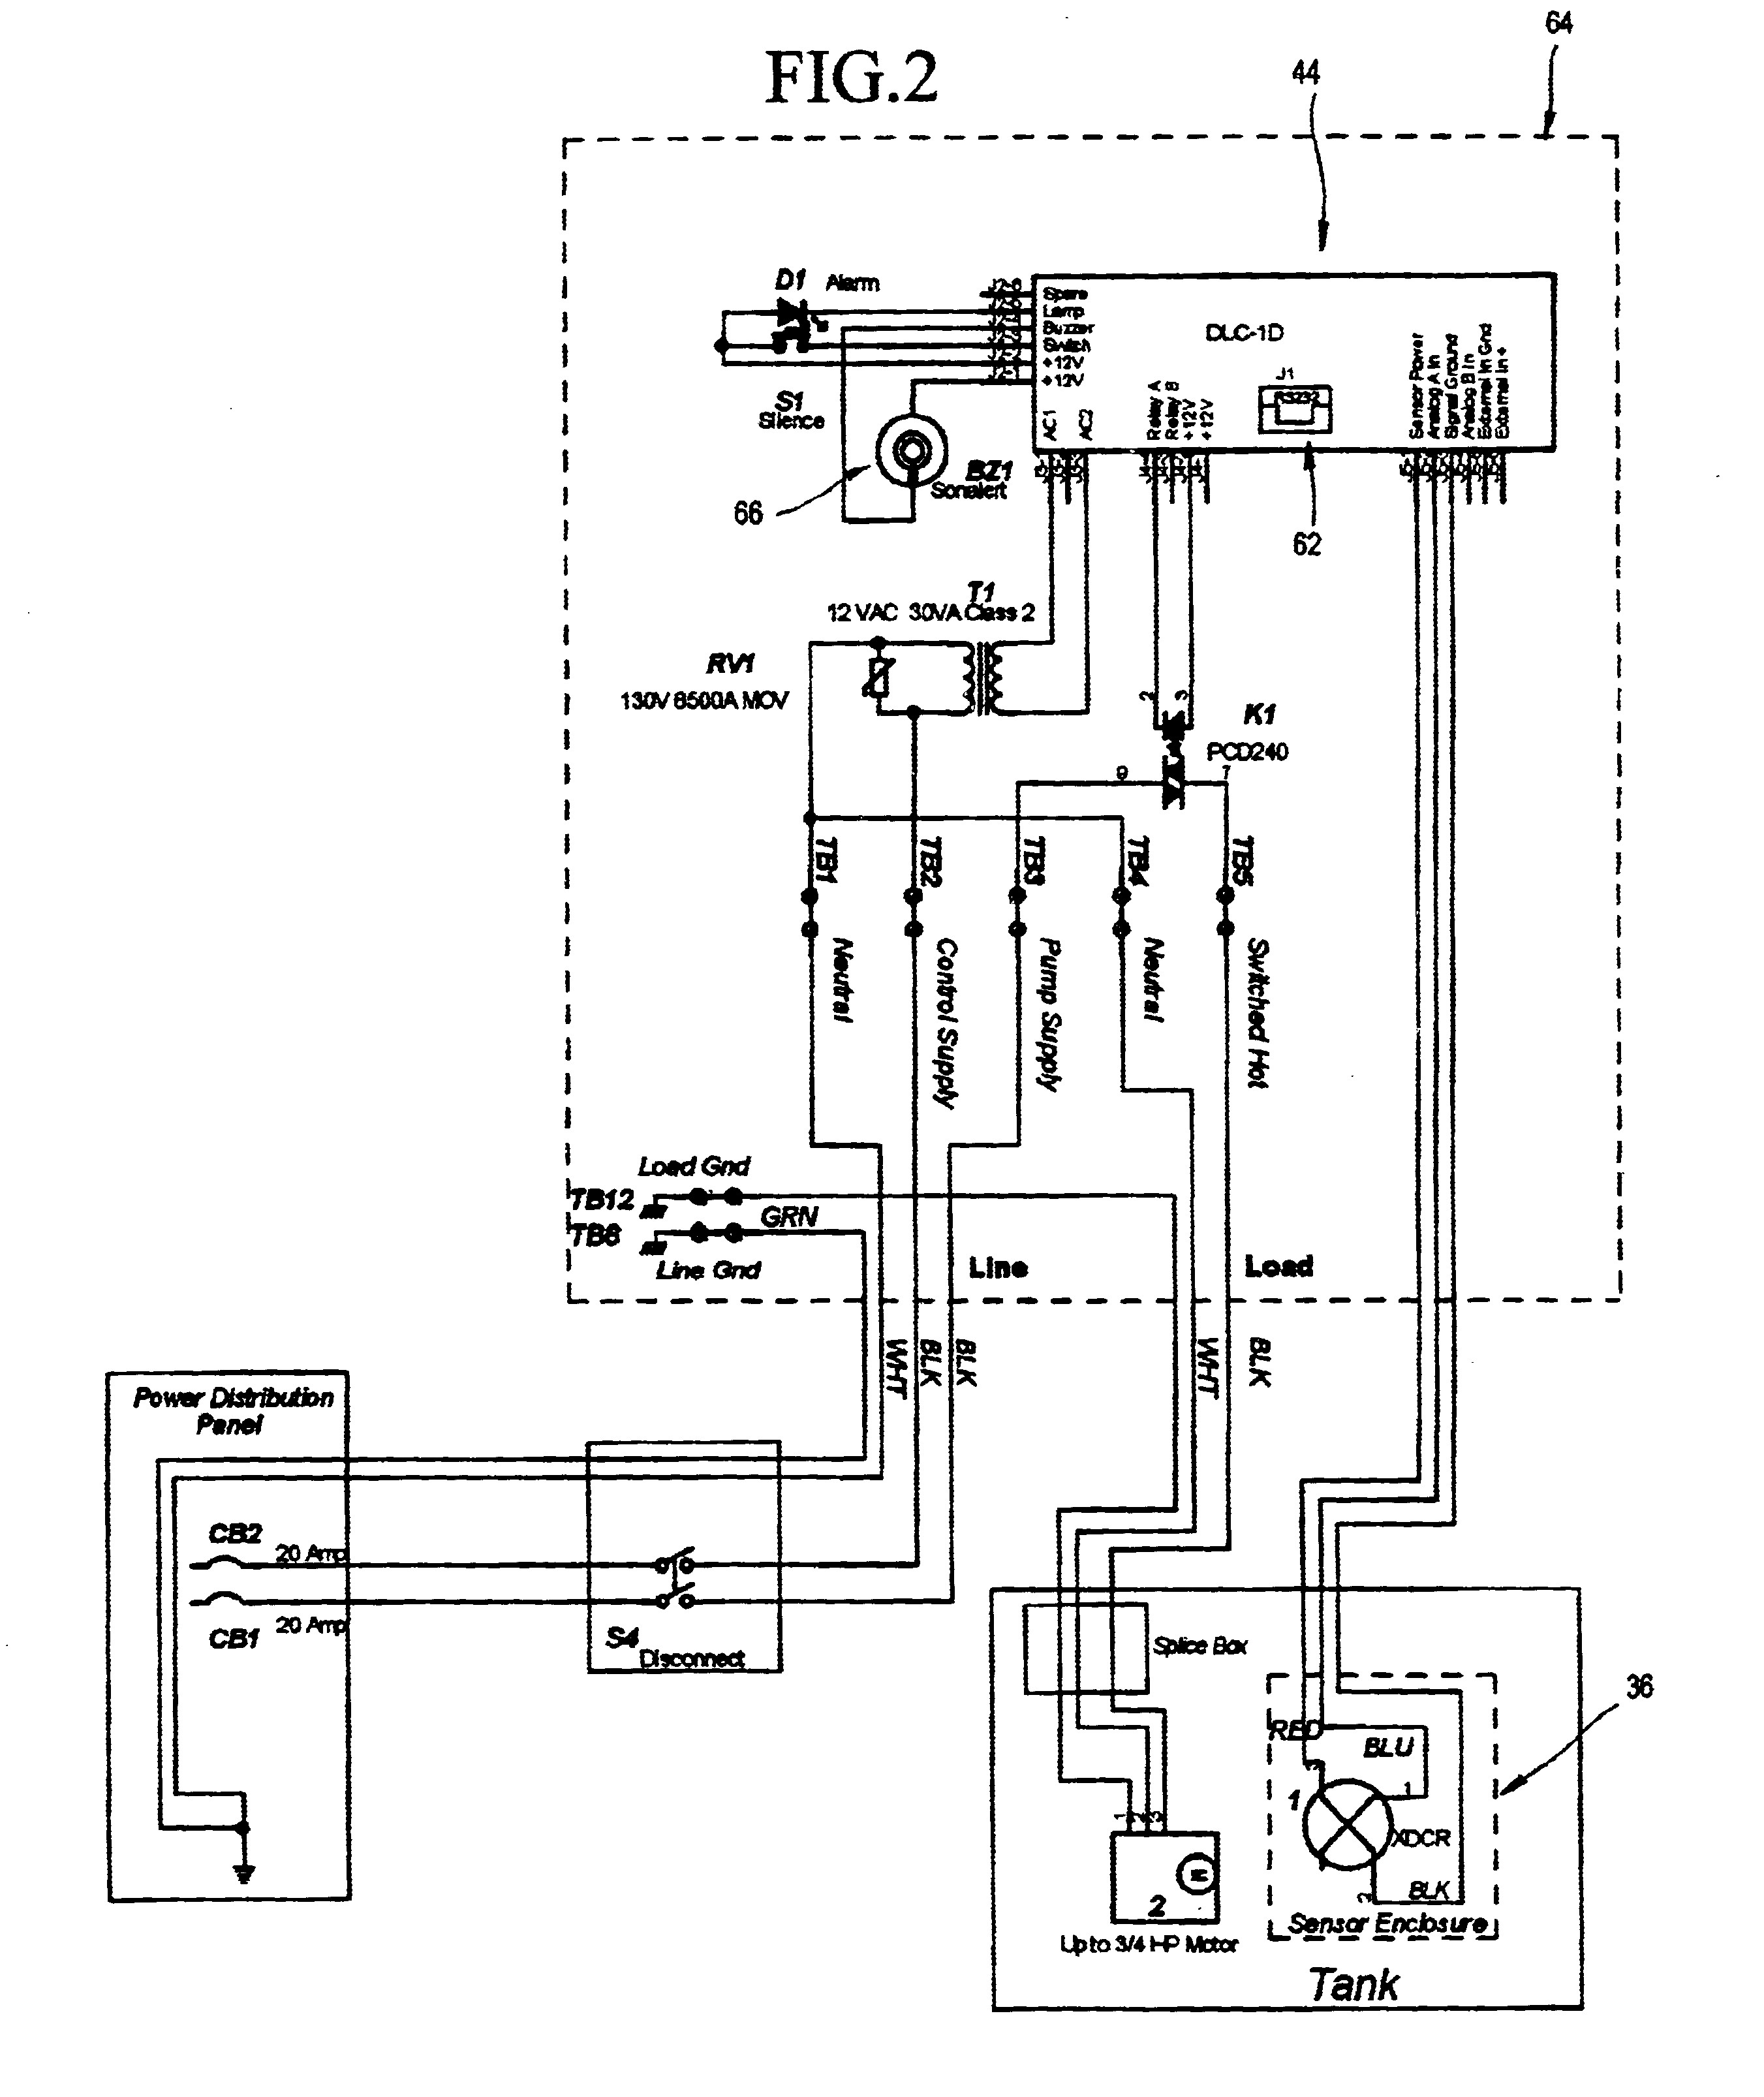 septic pump float switch wiring diagram 95 mustang 5 0 in tank system library